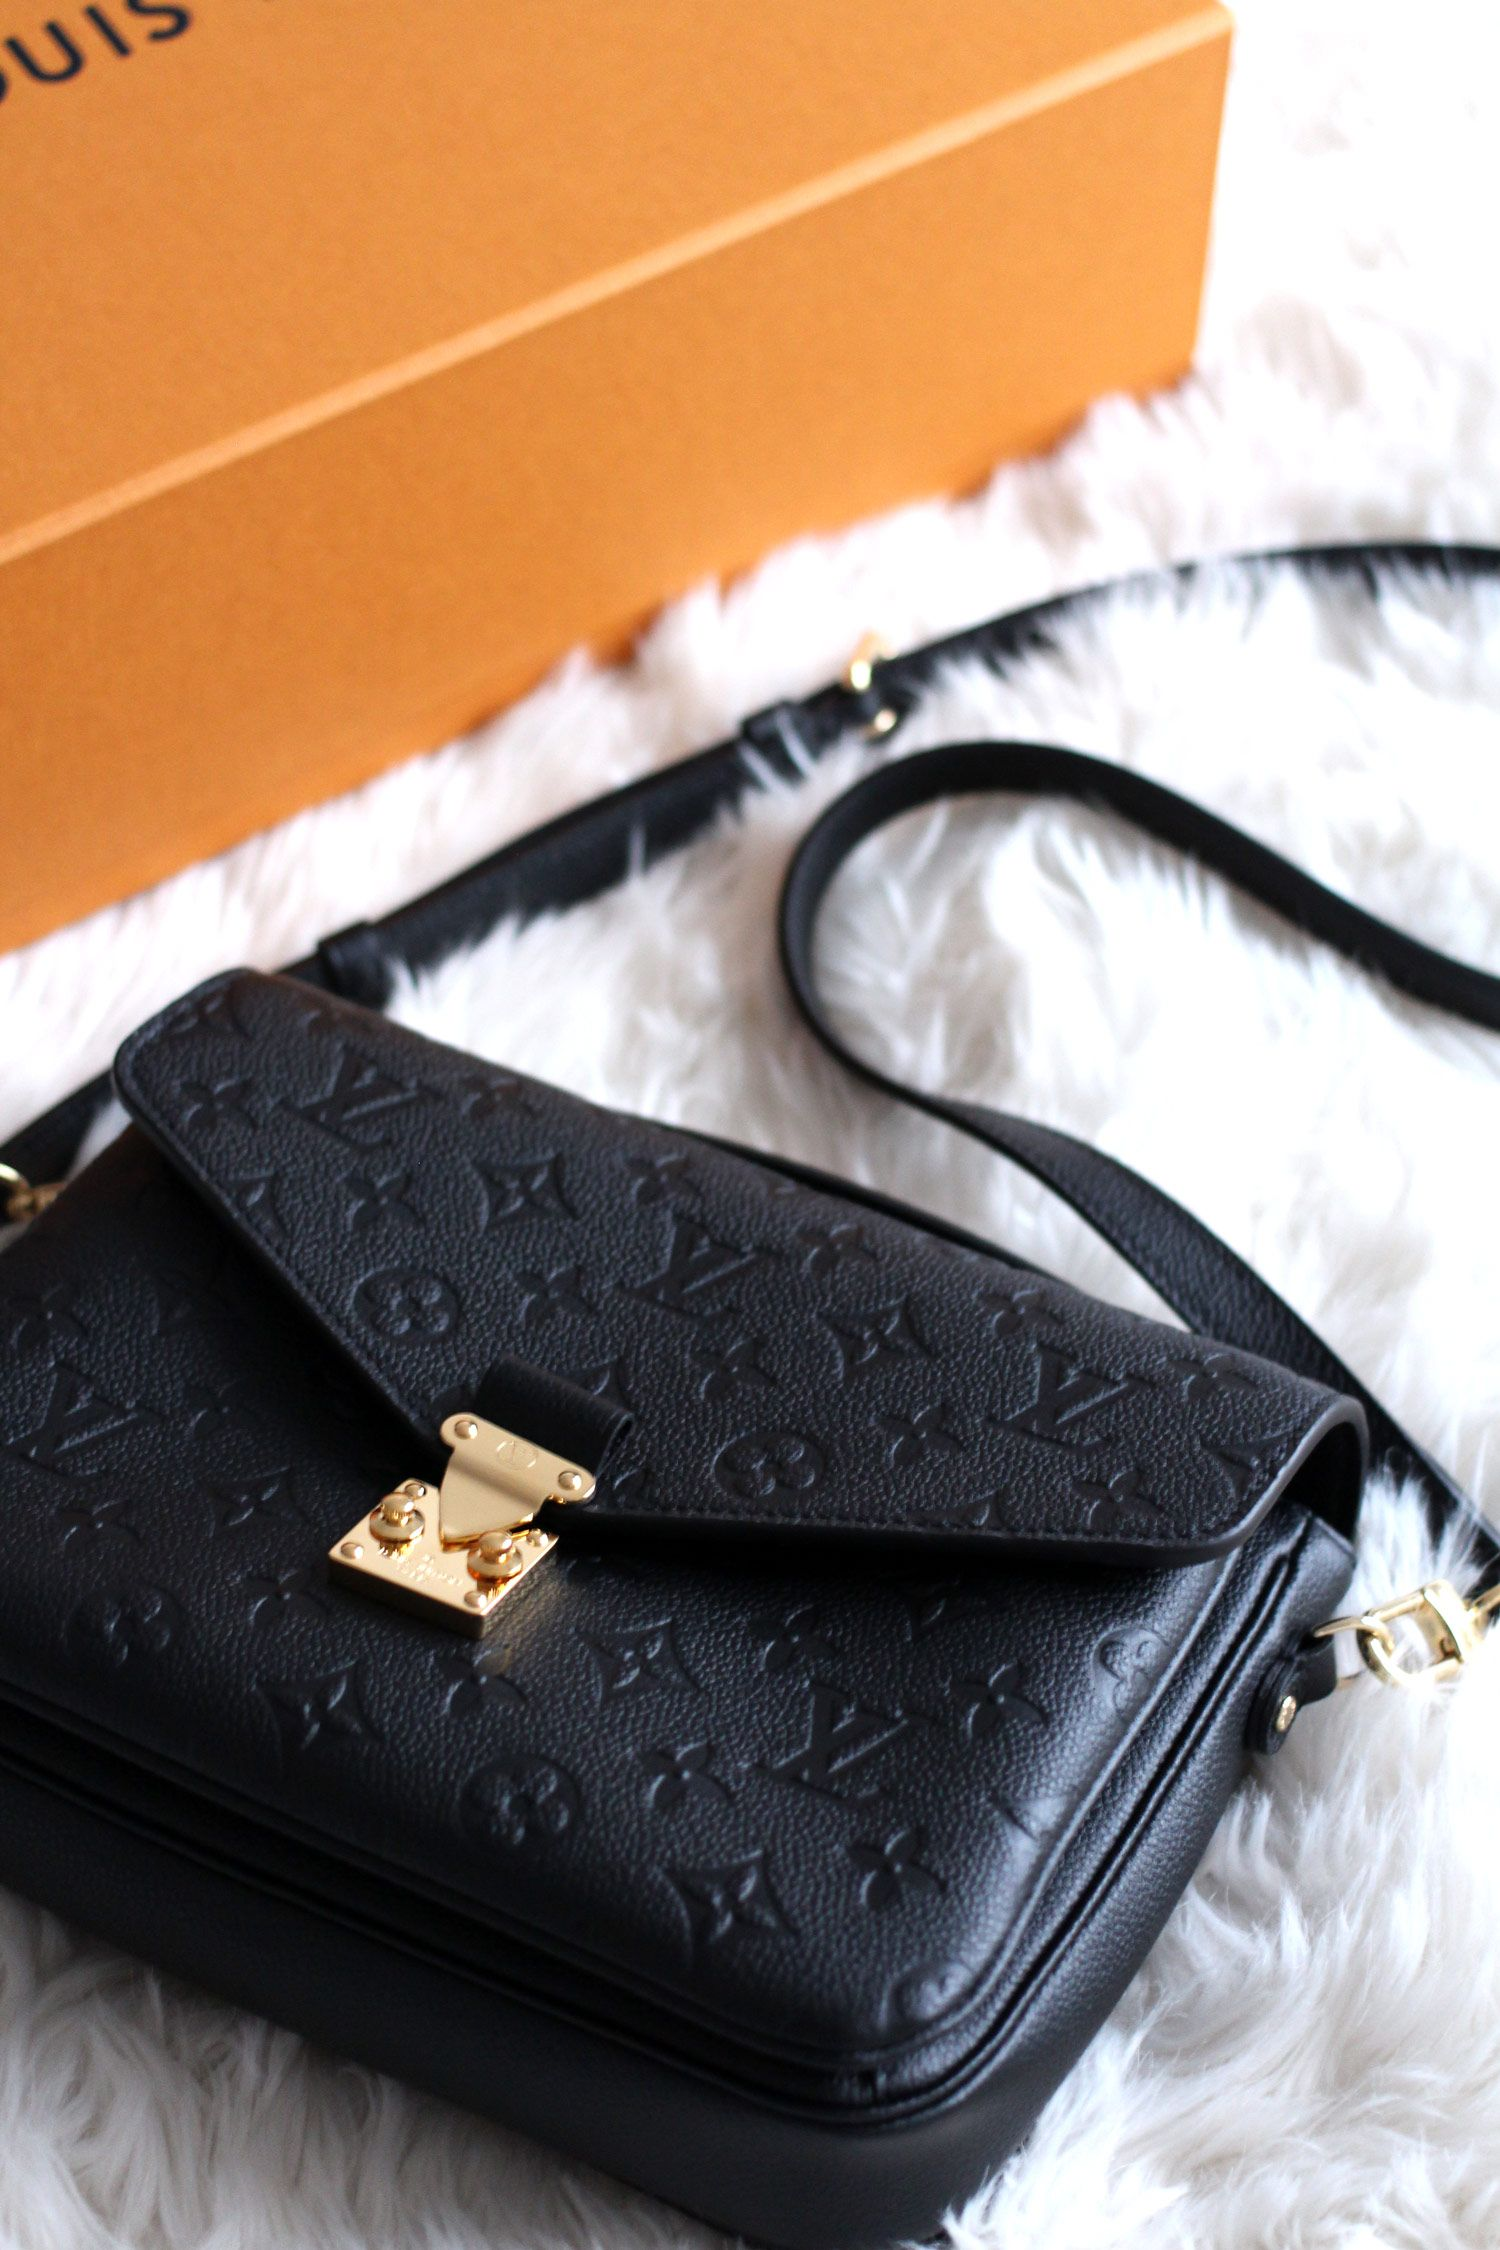 The Louis Vuitton Pochette Metis in black monogram empreinte leather with  gold hardware - review and overview - luxury fashion blogger UK 847ef29516c5e